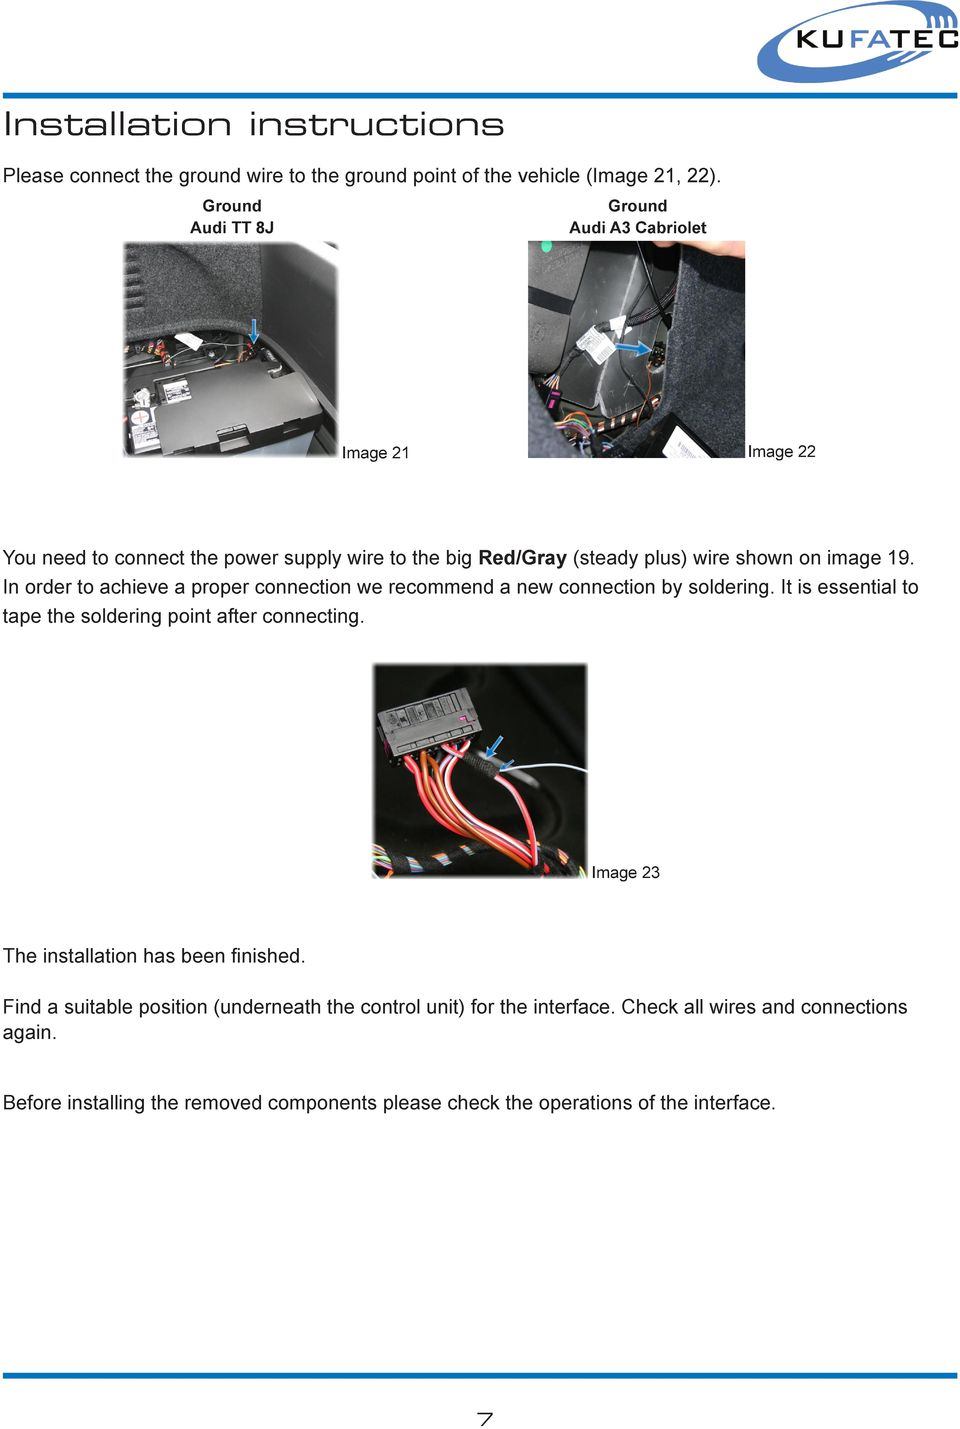 Installation Guide Convertible Top Interface Audi Pdf Rj45 Connector Wiring Diagram As Well Infrared Controls In Order To Achieve A Proper Connection We Recommend New By Soldering It